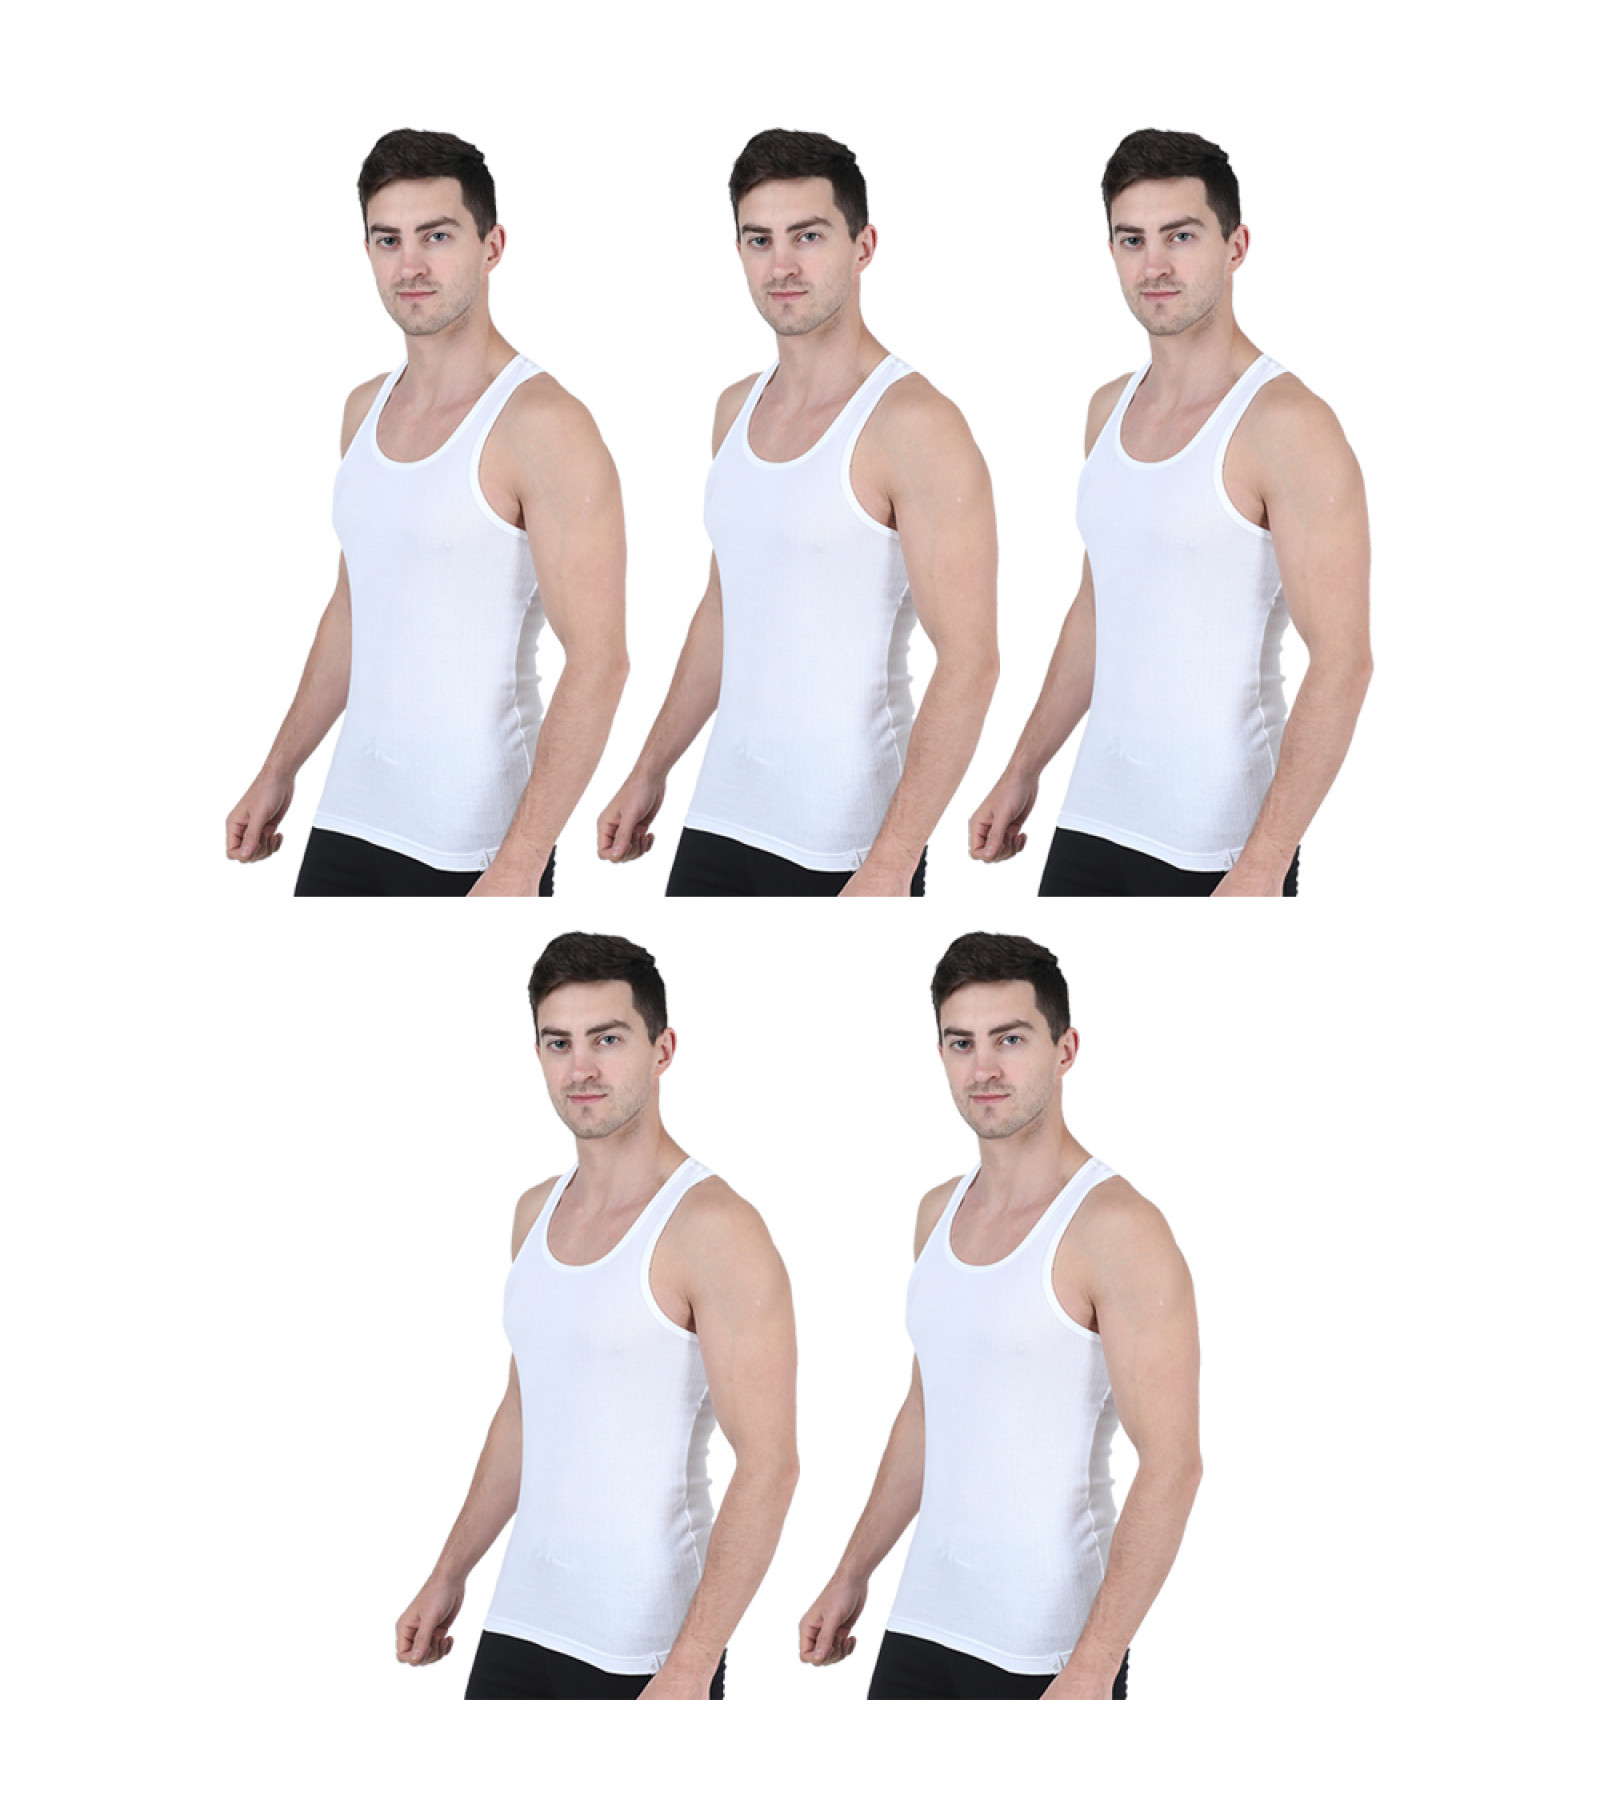 Woodsvally Integra men's vest 5 pack combo